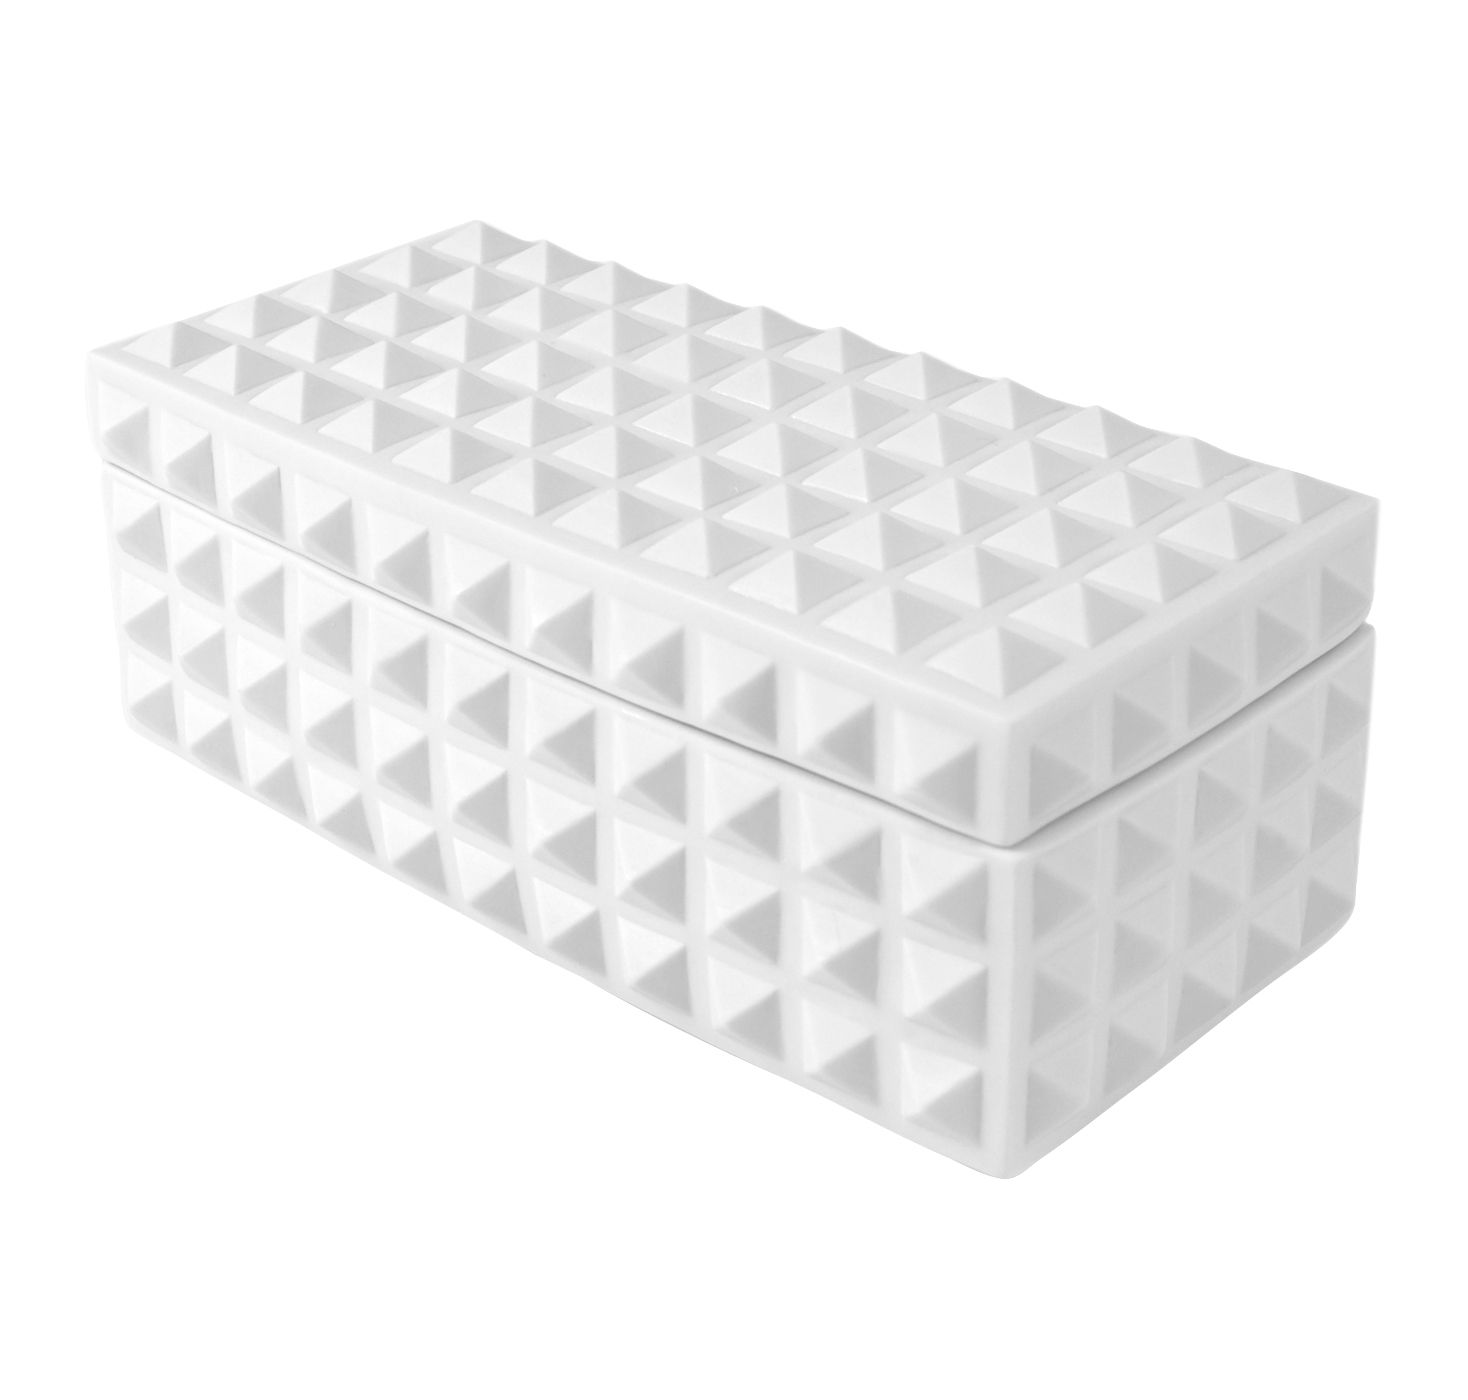 Decoration - Decorative Boxes - Charade Square Studded Box - Porcelain - 13 x 25 cm by Jonathan Adler - Matte white - Matt white porcelain